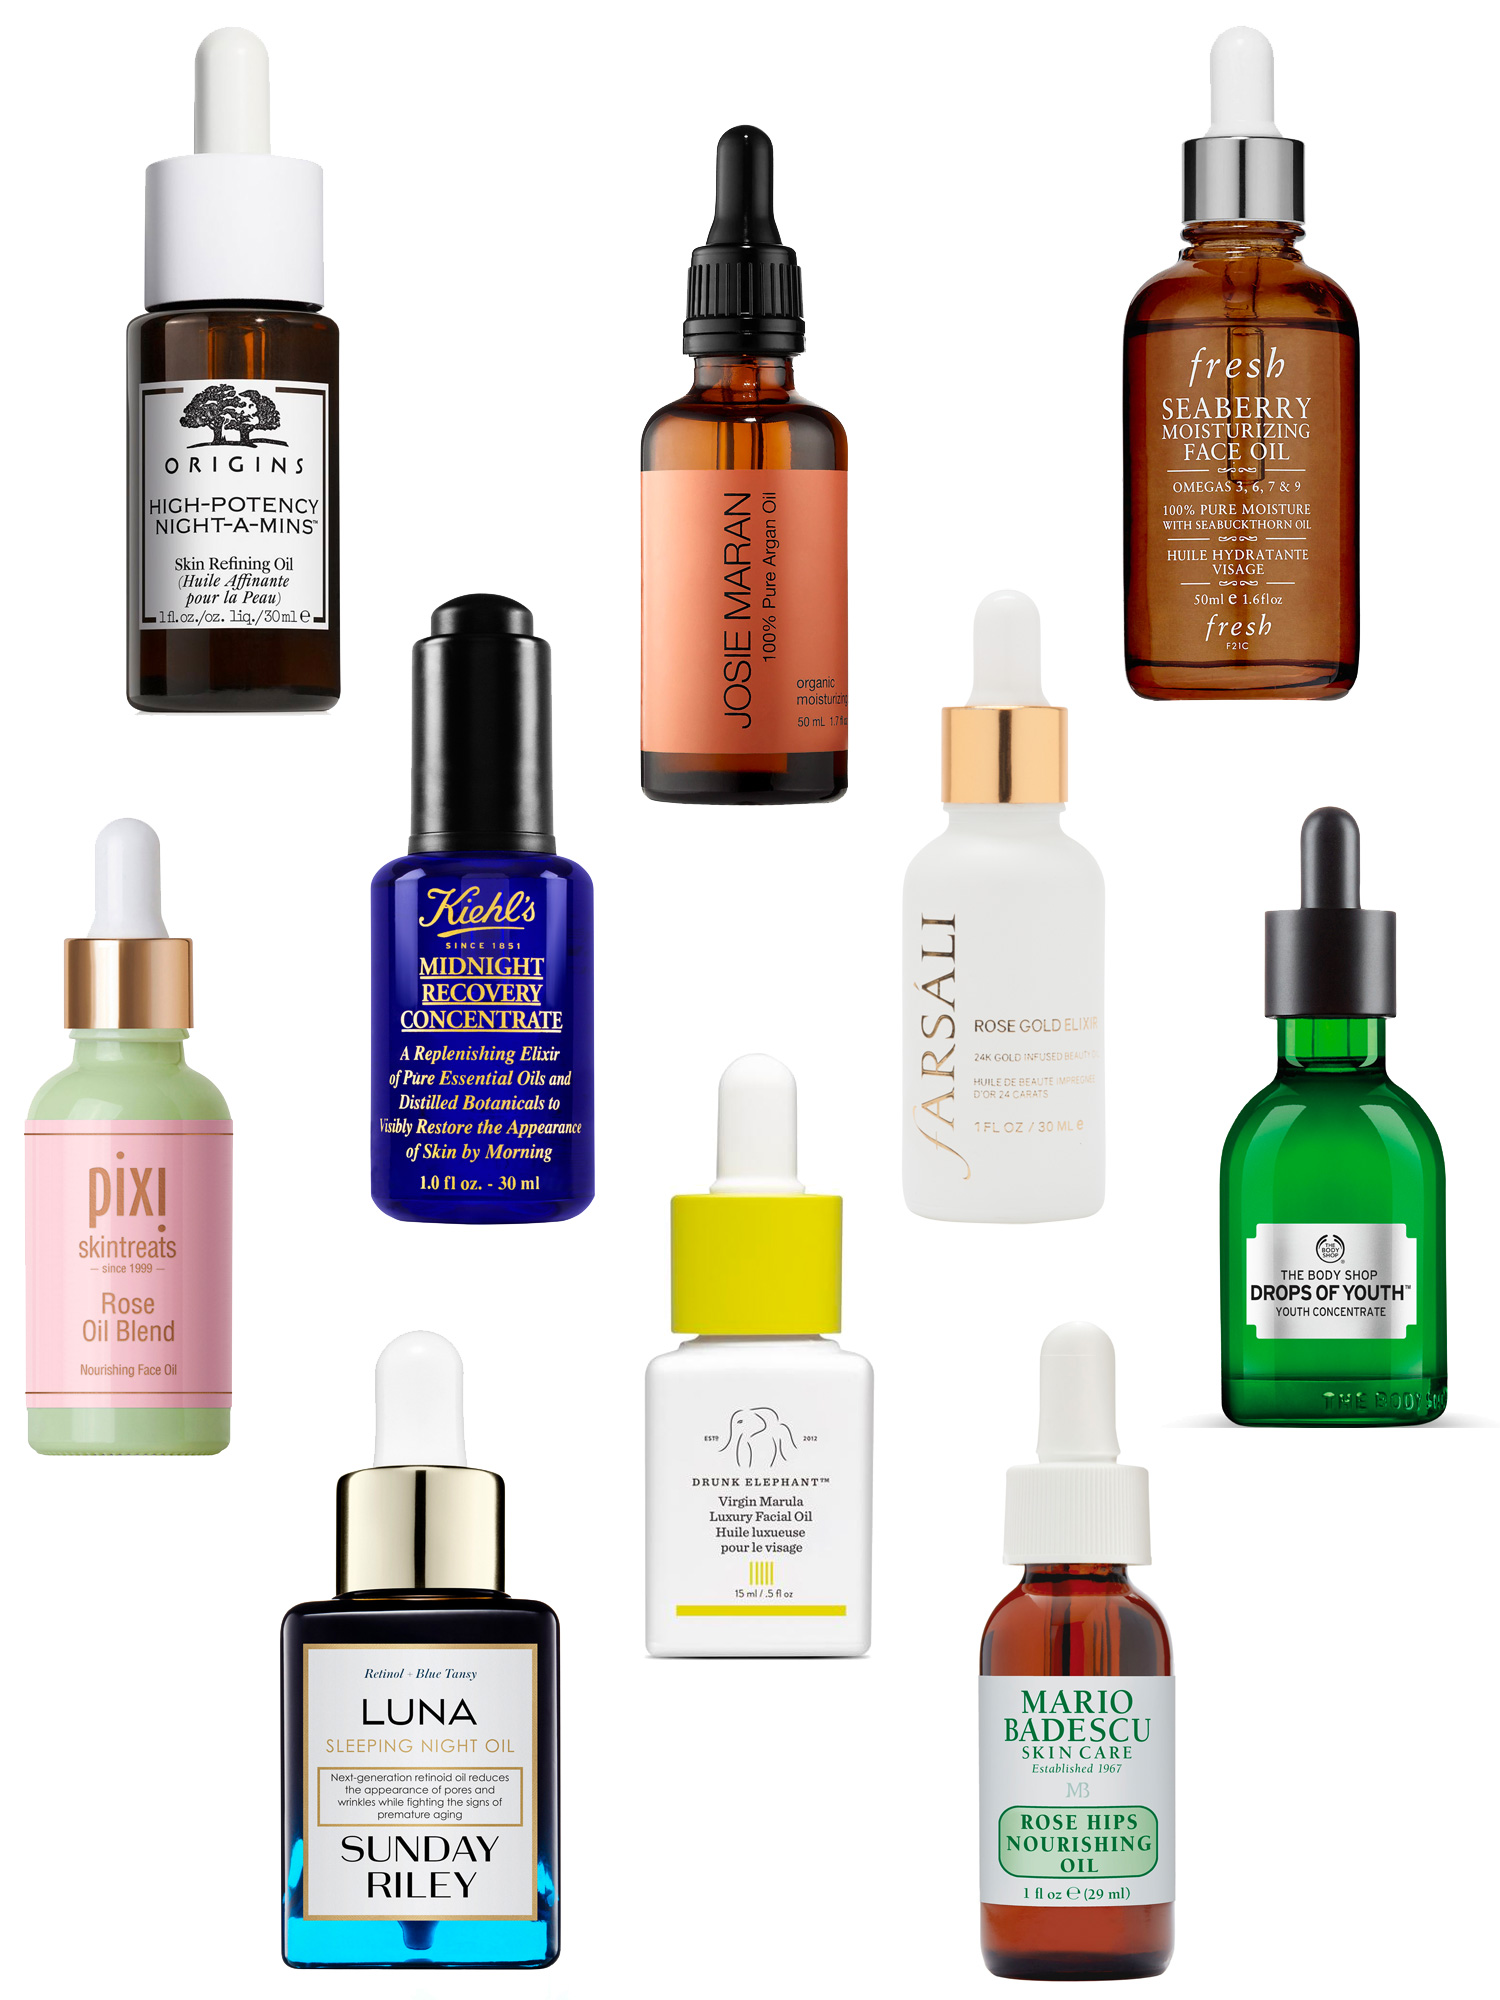 10 Oils to Make Your Dry Skin Glow